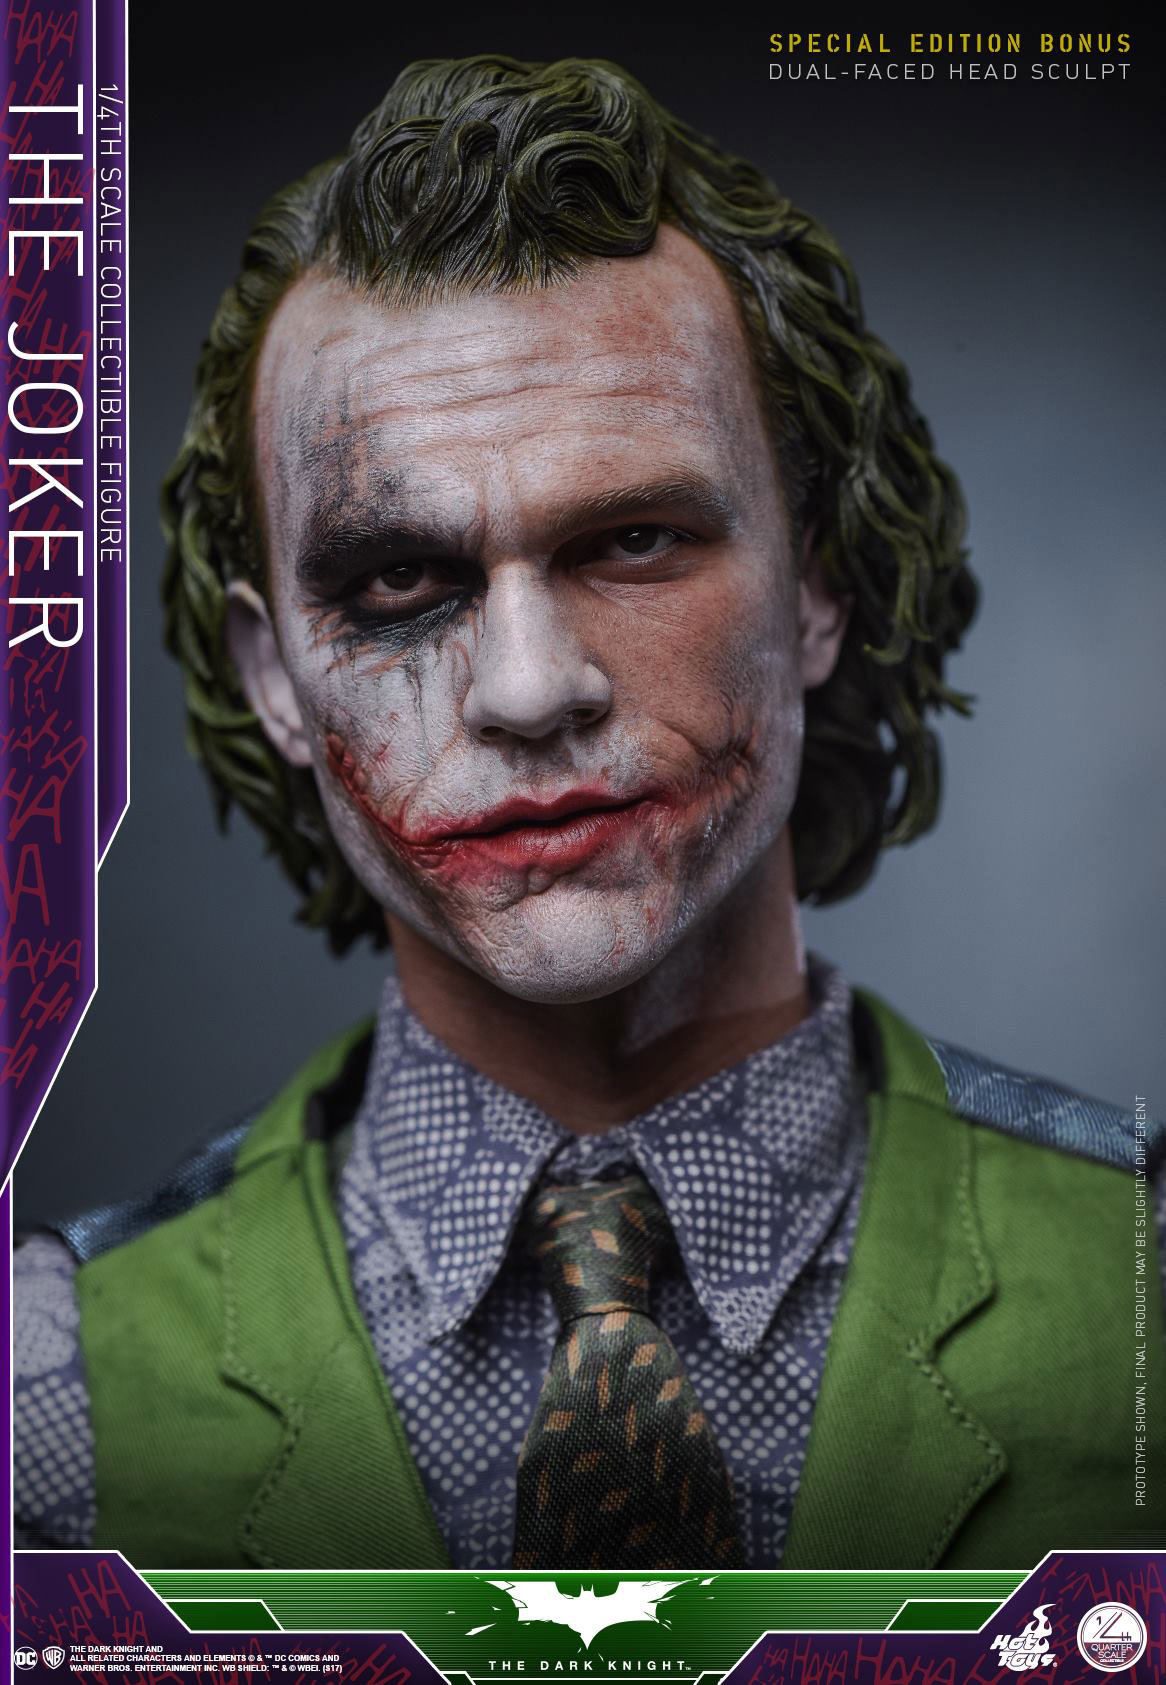 The Dark Knight The Joker Figure By Hot Toys